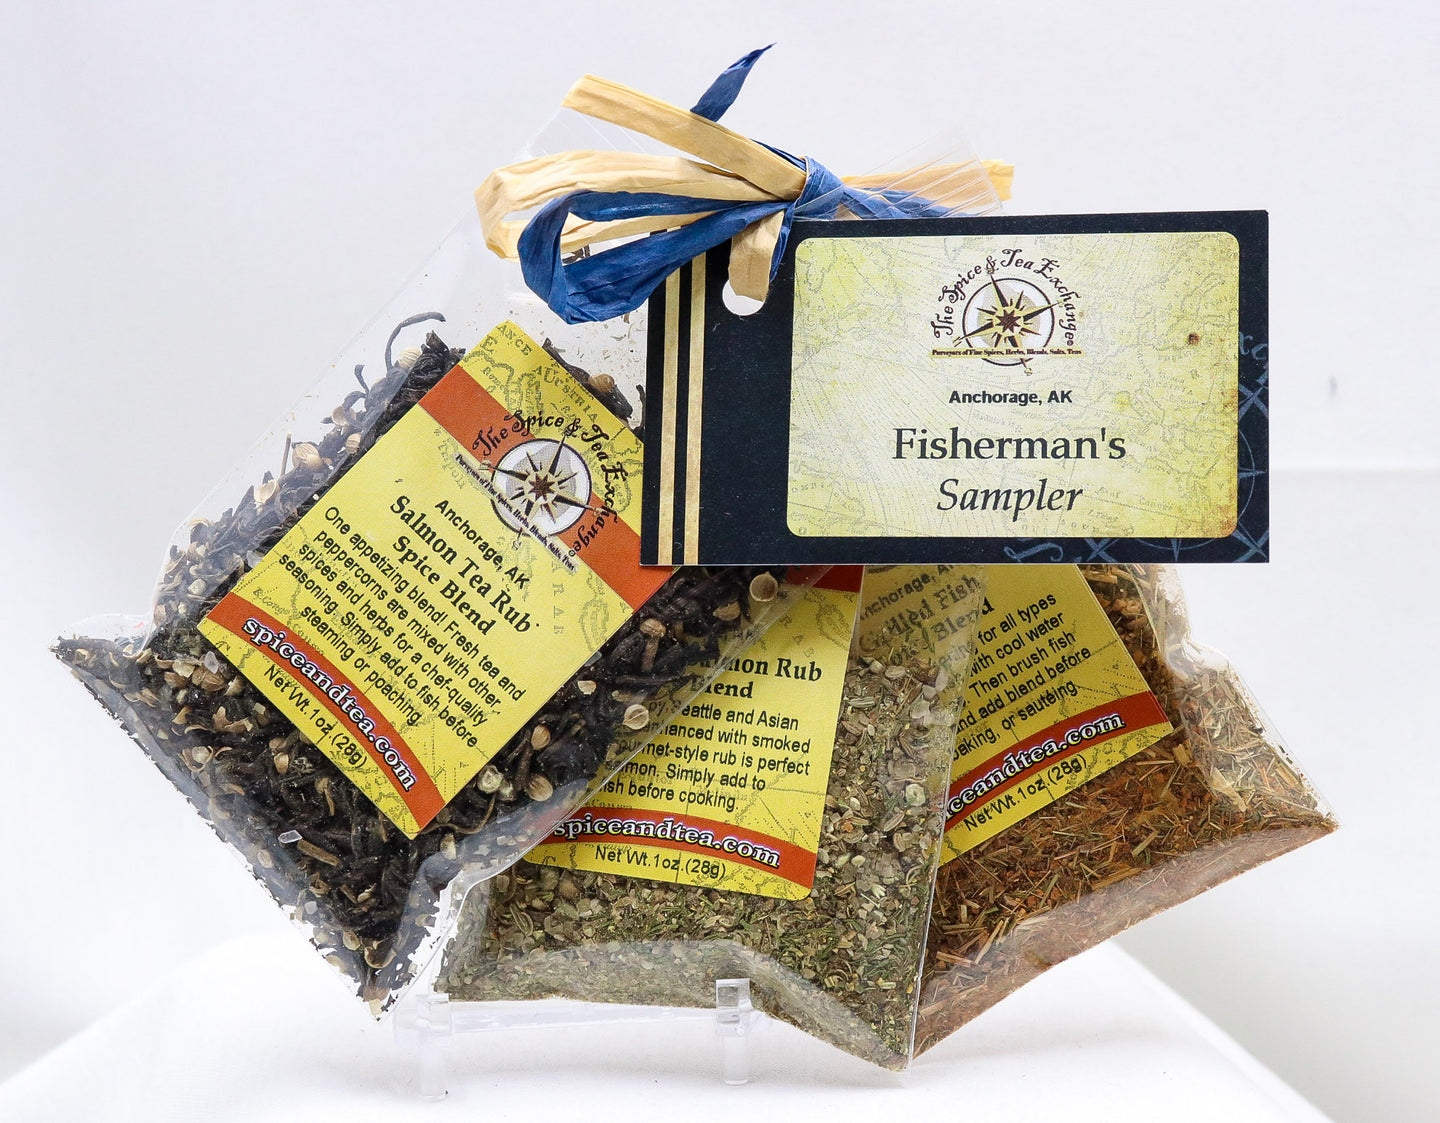 FISHERMAN'S SAMPLER SPICE GIFT SET